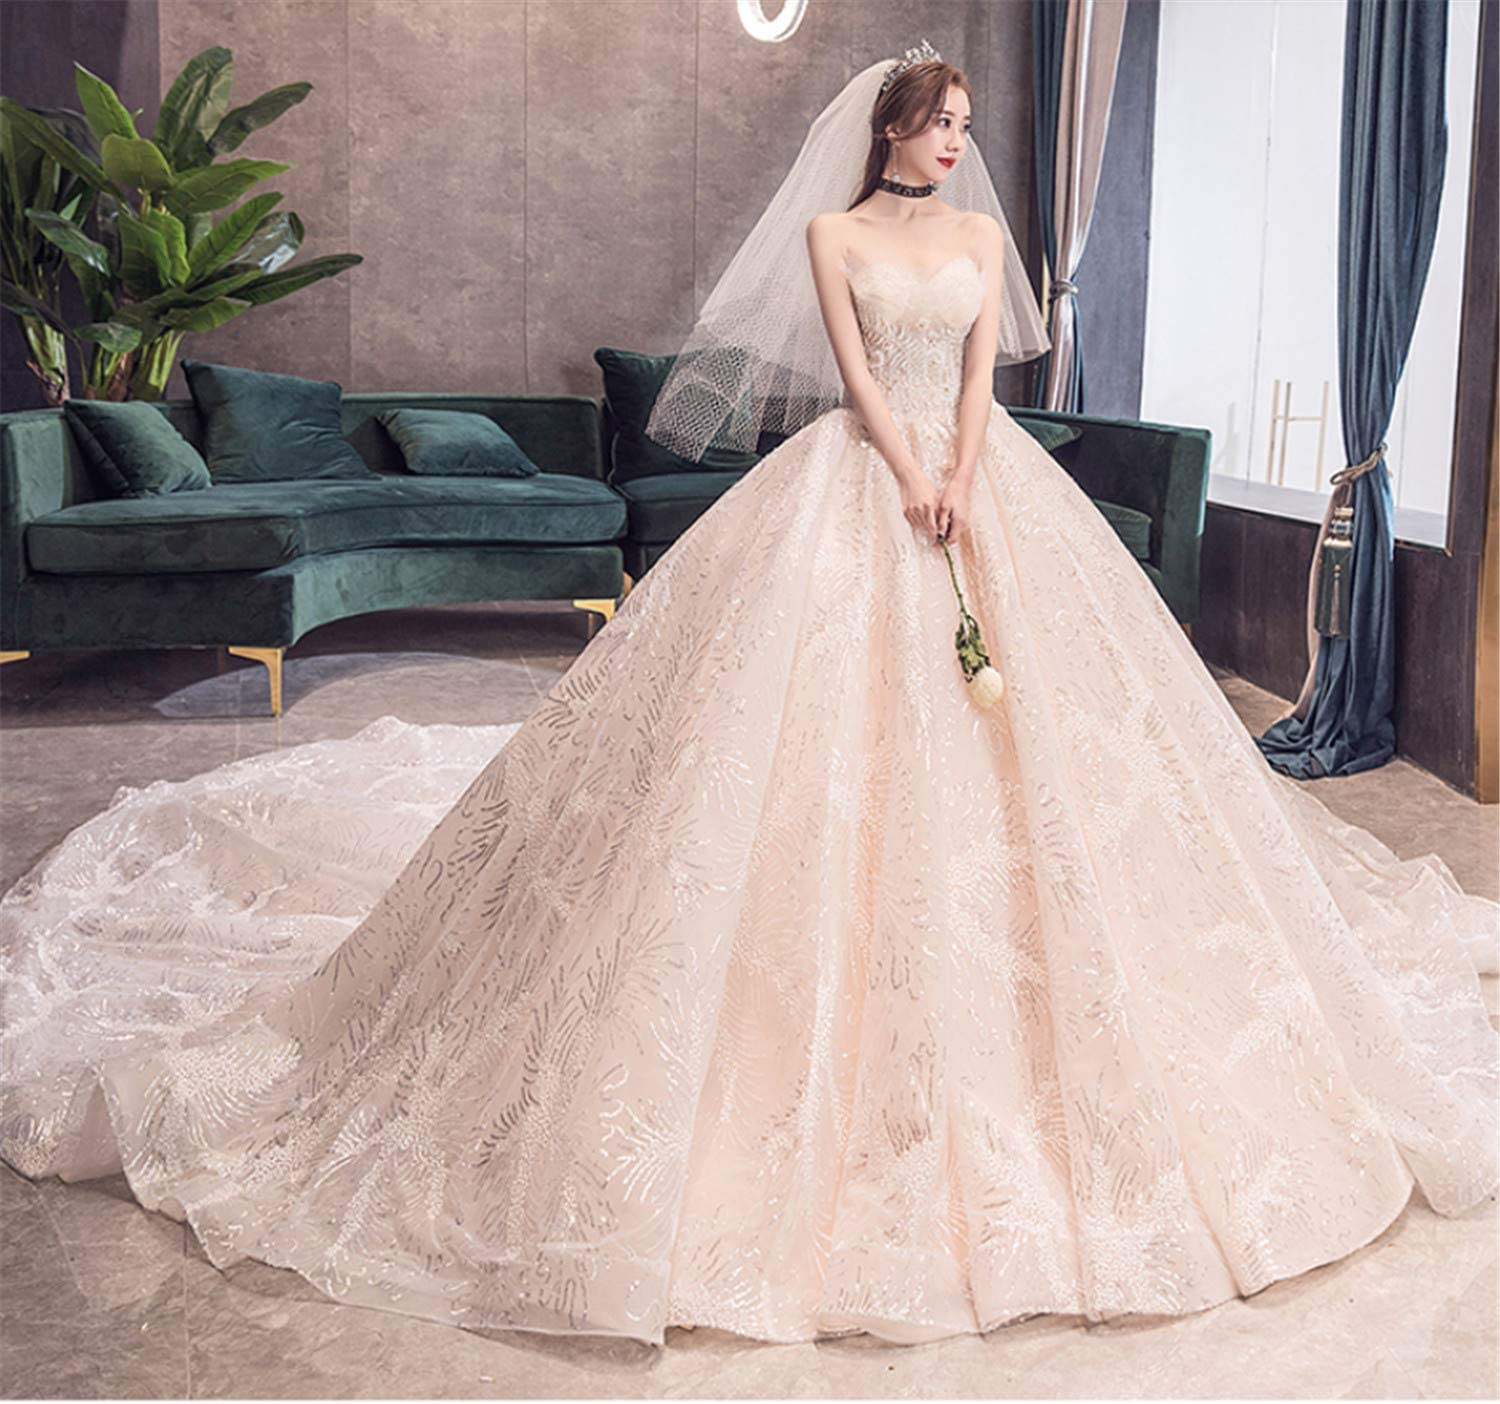 Amazon Com Bianjesus Lace Wedding Dress Cap Sleeves Beaded Corset Keyhole Backless Wedding Gowns Court Train Oversize Bridal Gowns Champagne Sports Outdoors